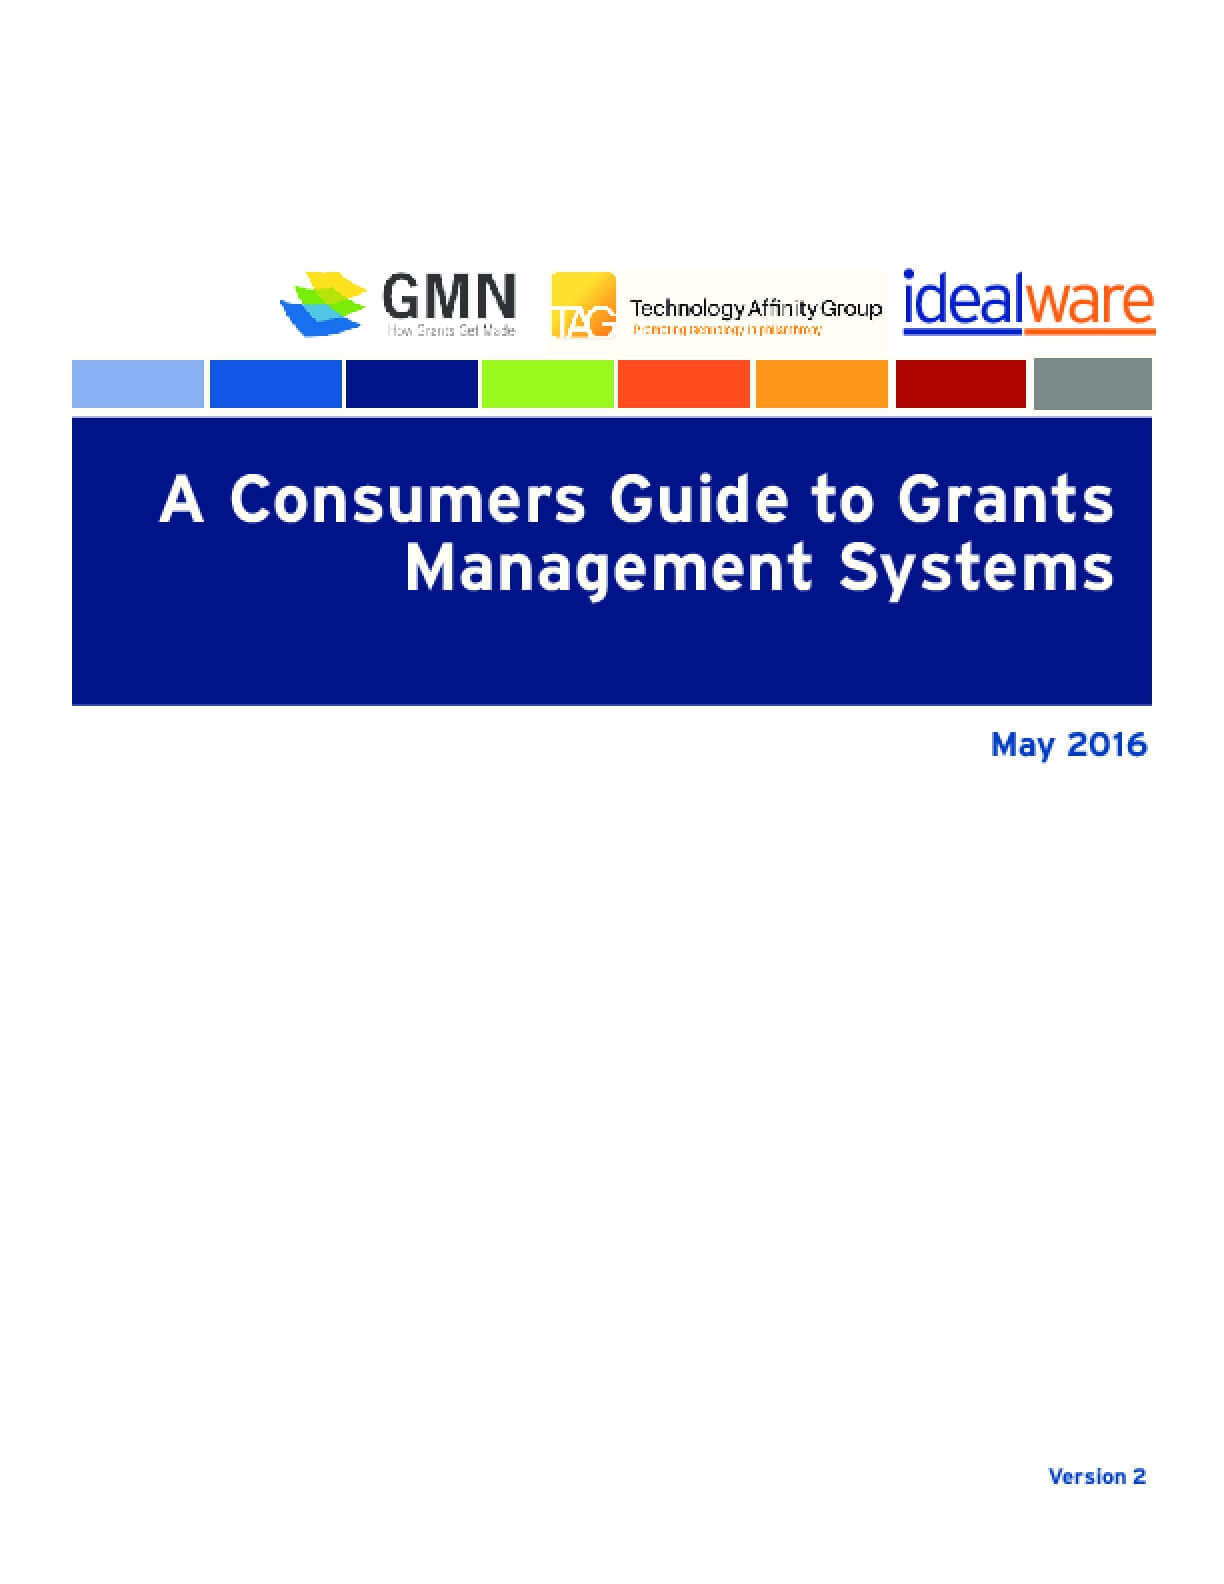 A Consumers Guide to Grants Management Systems 2016